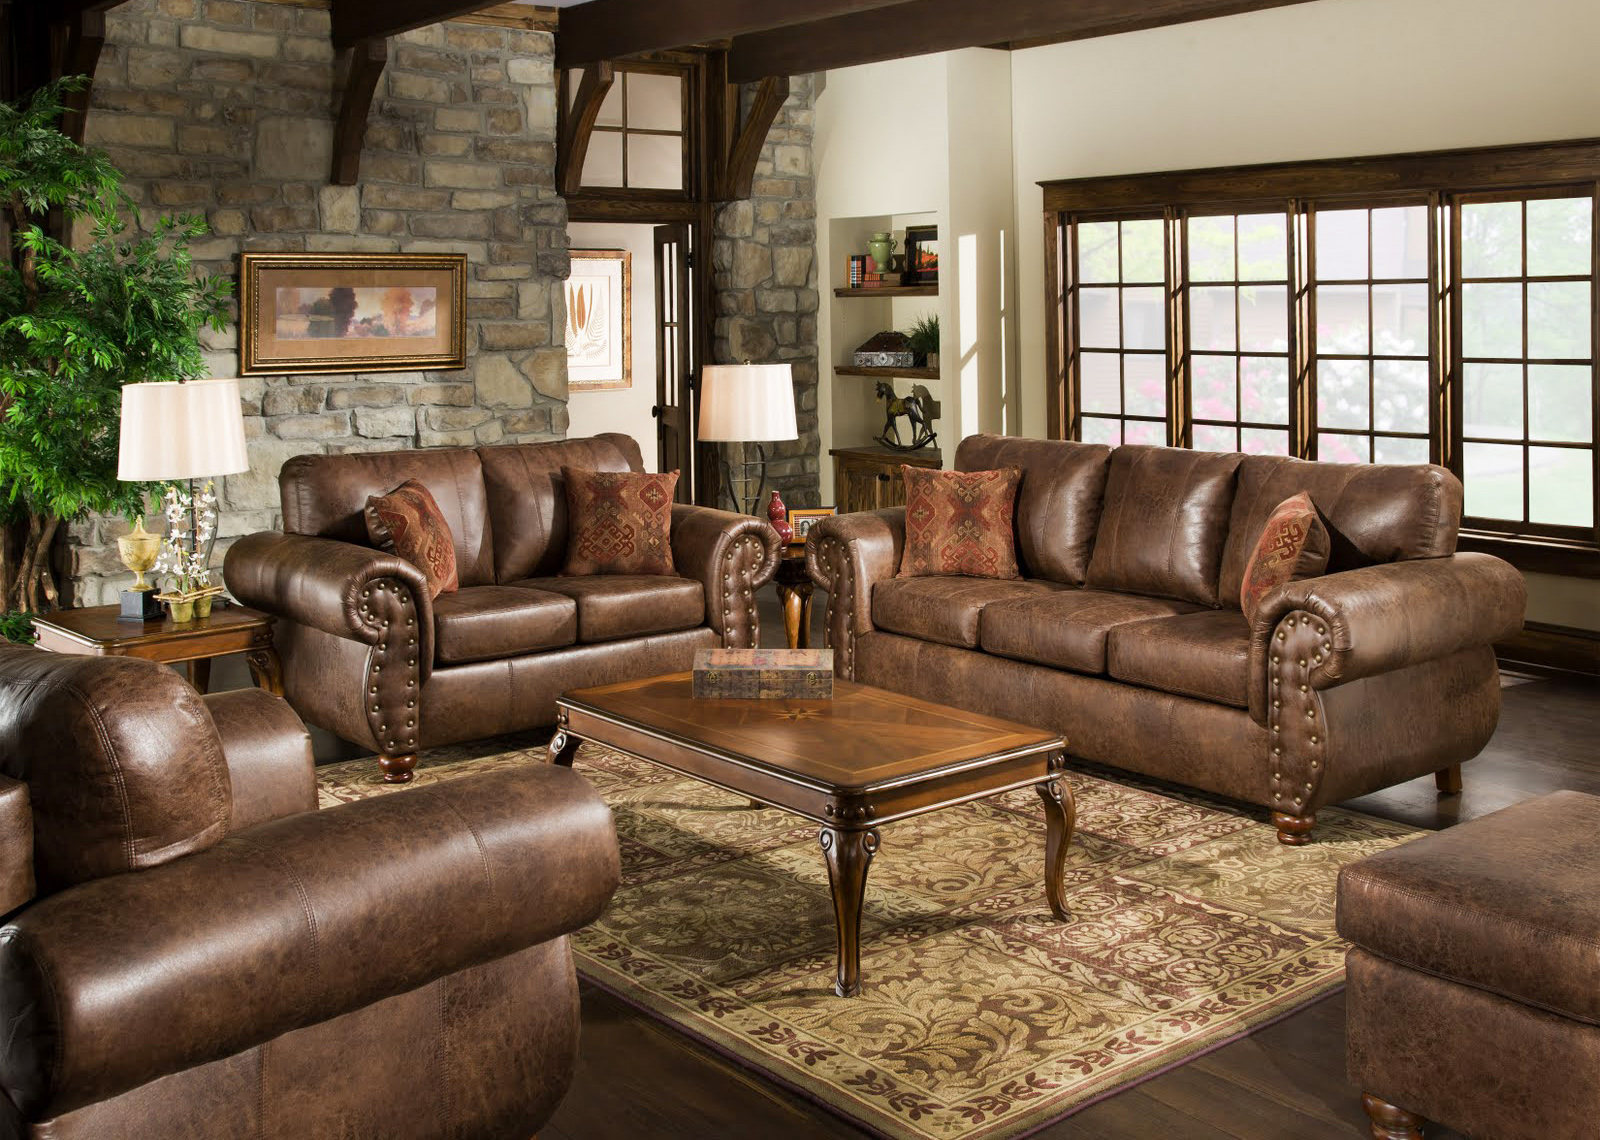 leather-furniture-living-room-furniture-sets-in-vintage-home-furnitures-ideas-with-leather-sofa-and-wooden-coffee-table